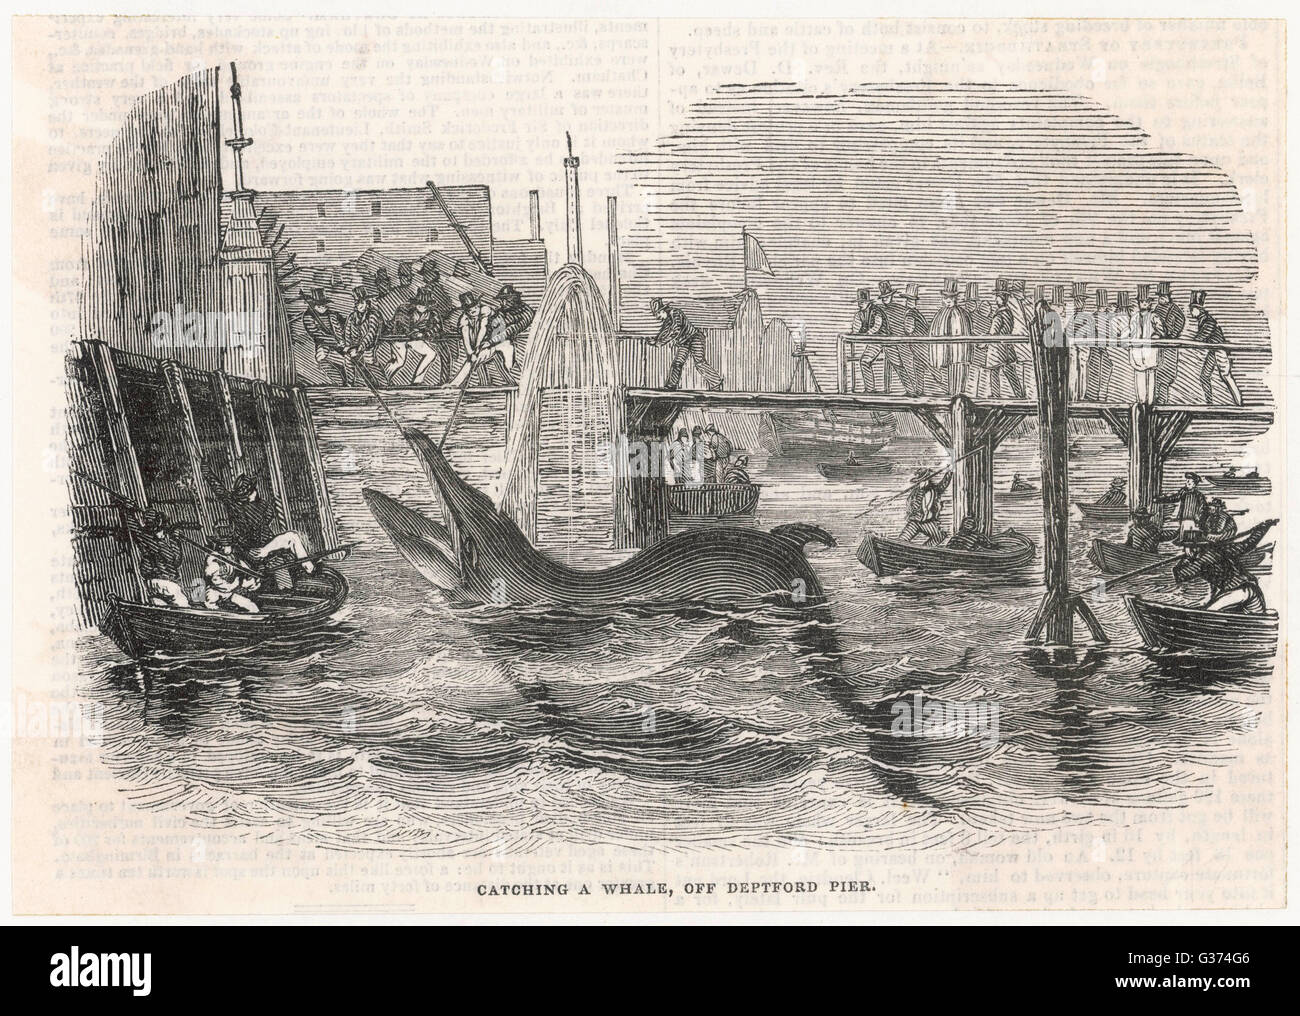 Catching a whale off Deptford  Pier         Date: 1842 Stock Photo